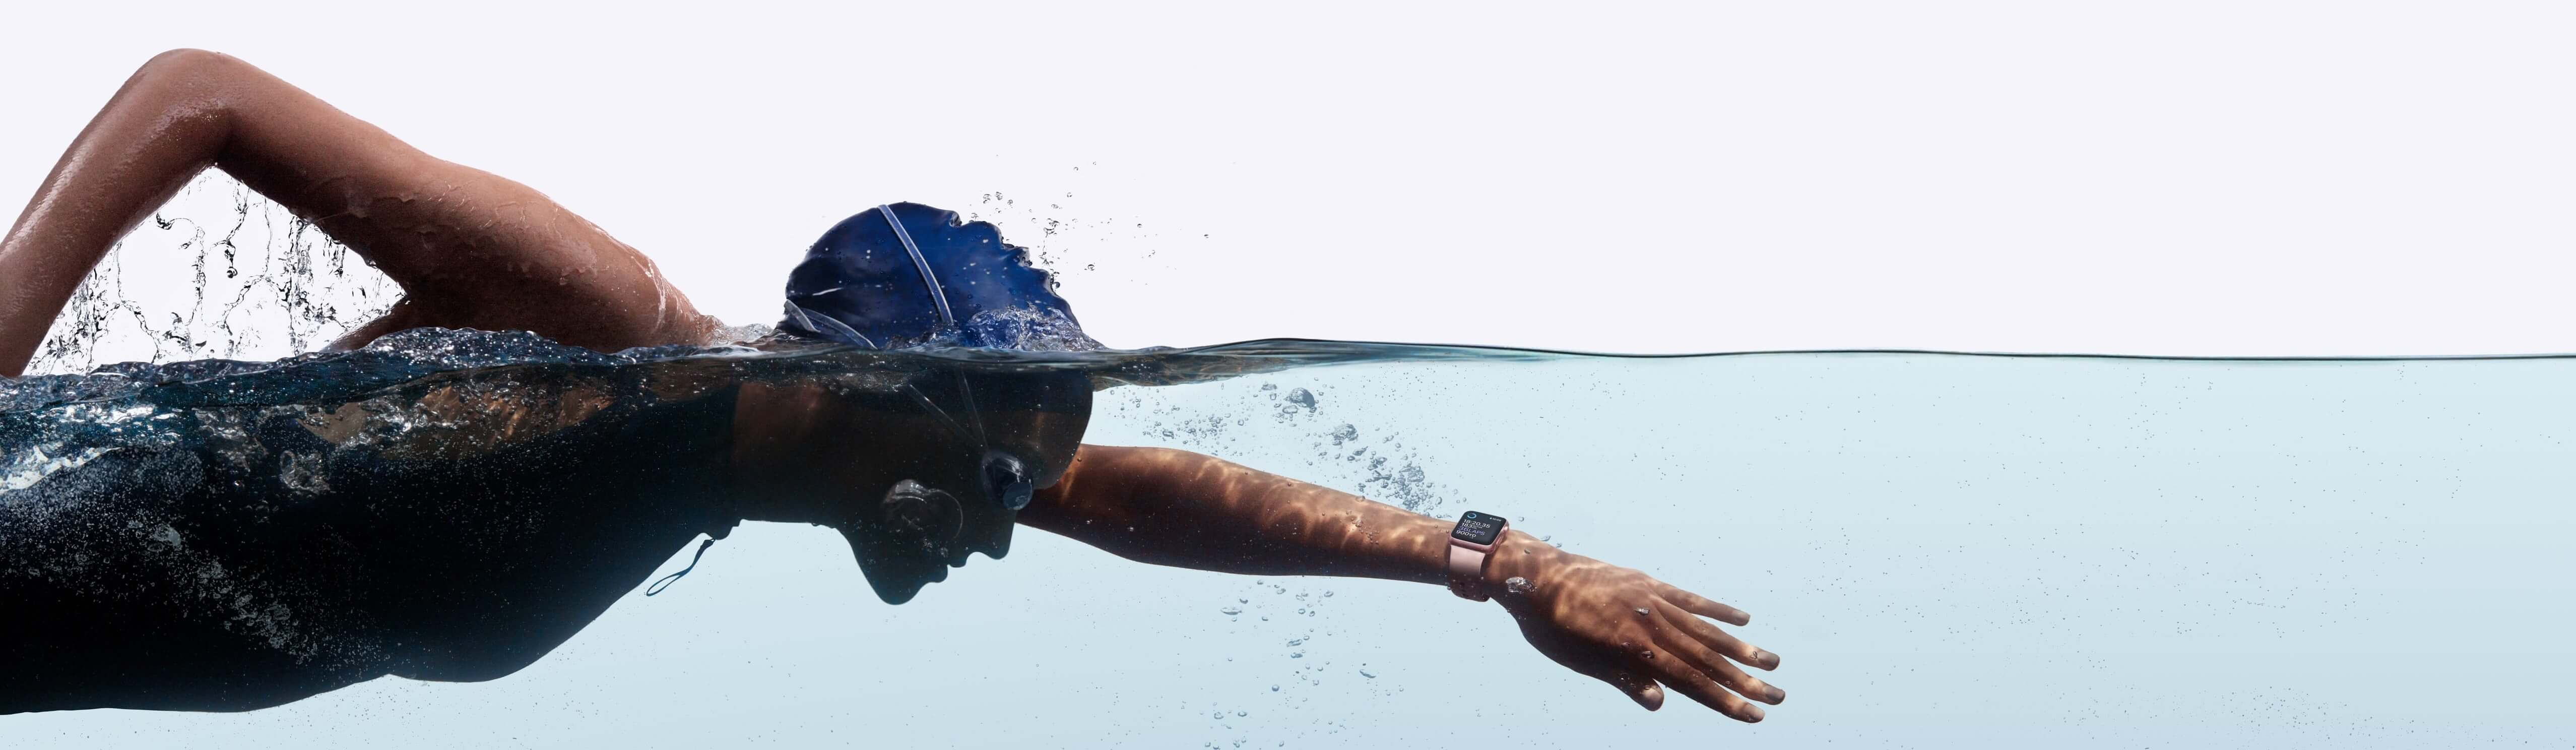 apple-watch-series-3-natation